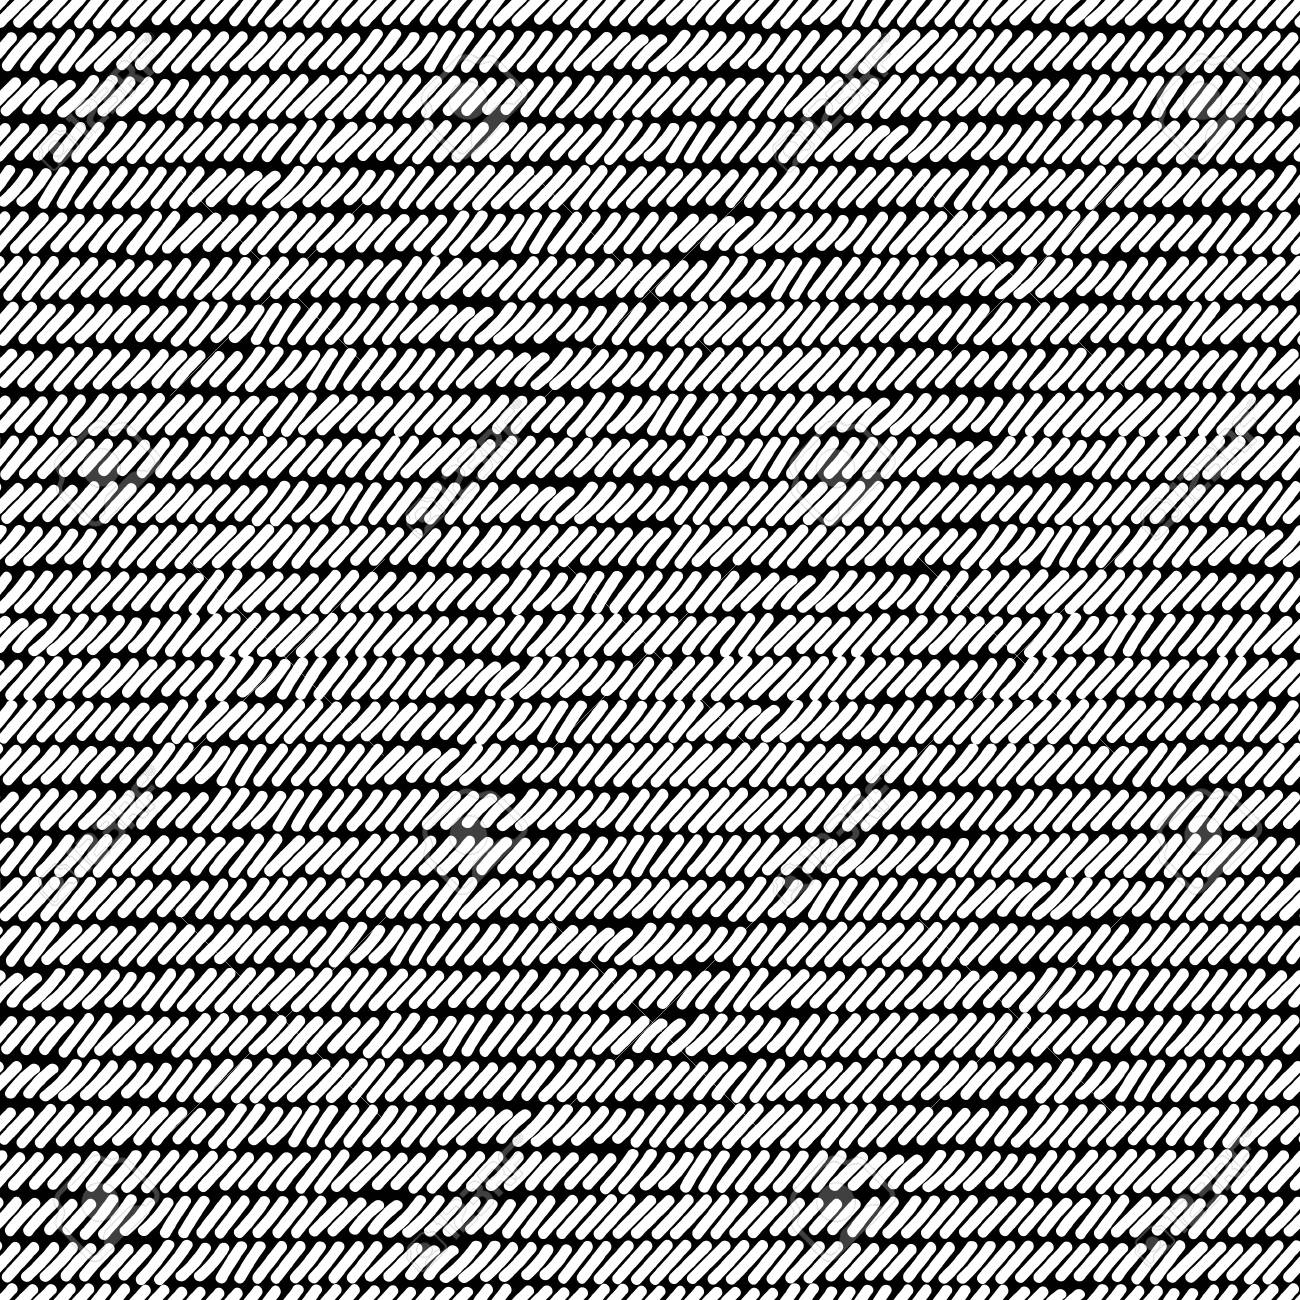 Black And White Rug Woven Striped Fabric Seamless Pattern Vector Royalty Free Cliparts Vectors And Stock Illustration Image 85774443